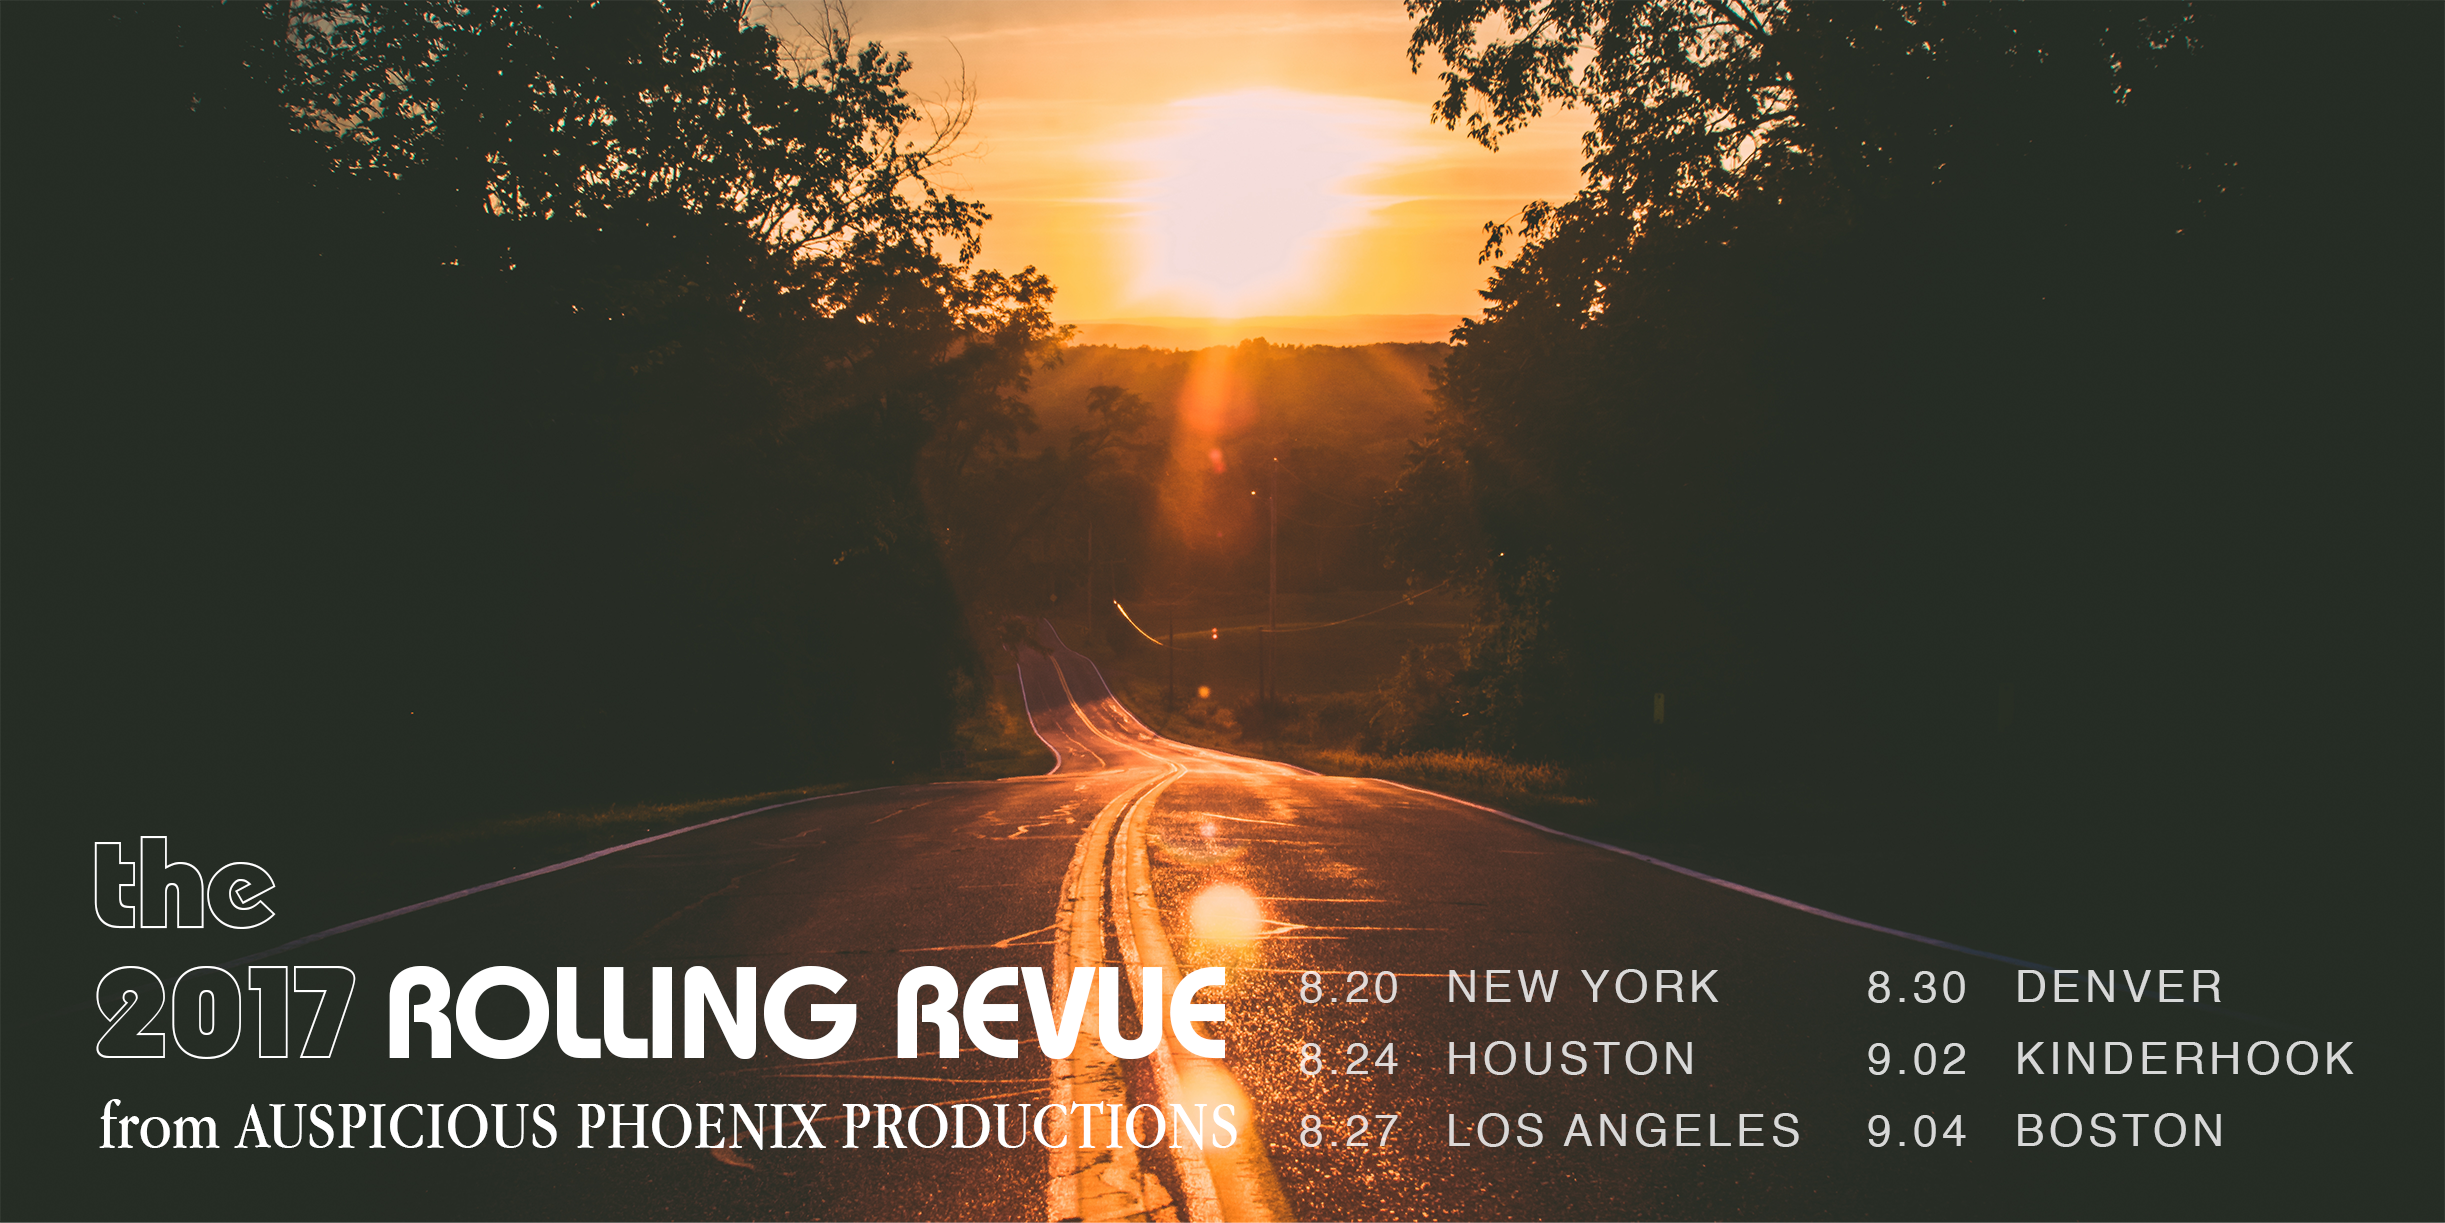 The 2017 Rolling Revue: New York, NY